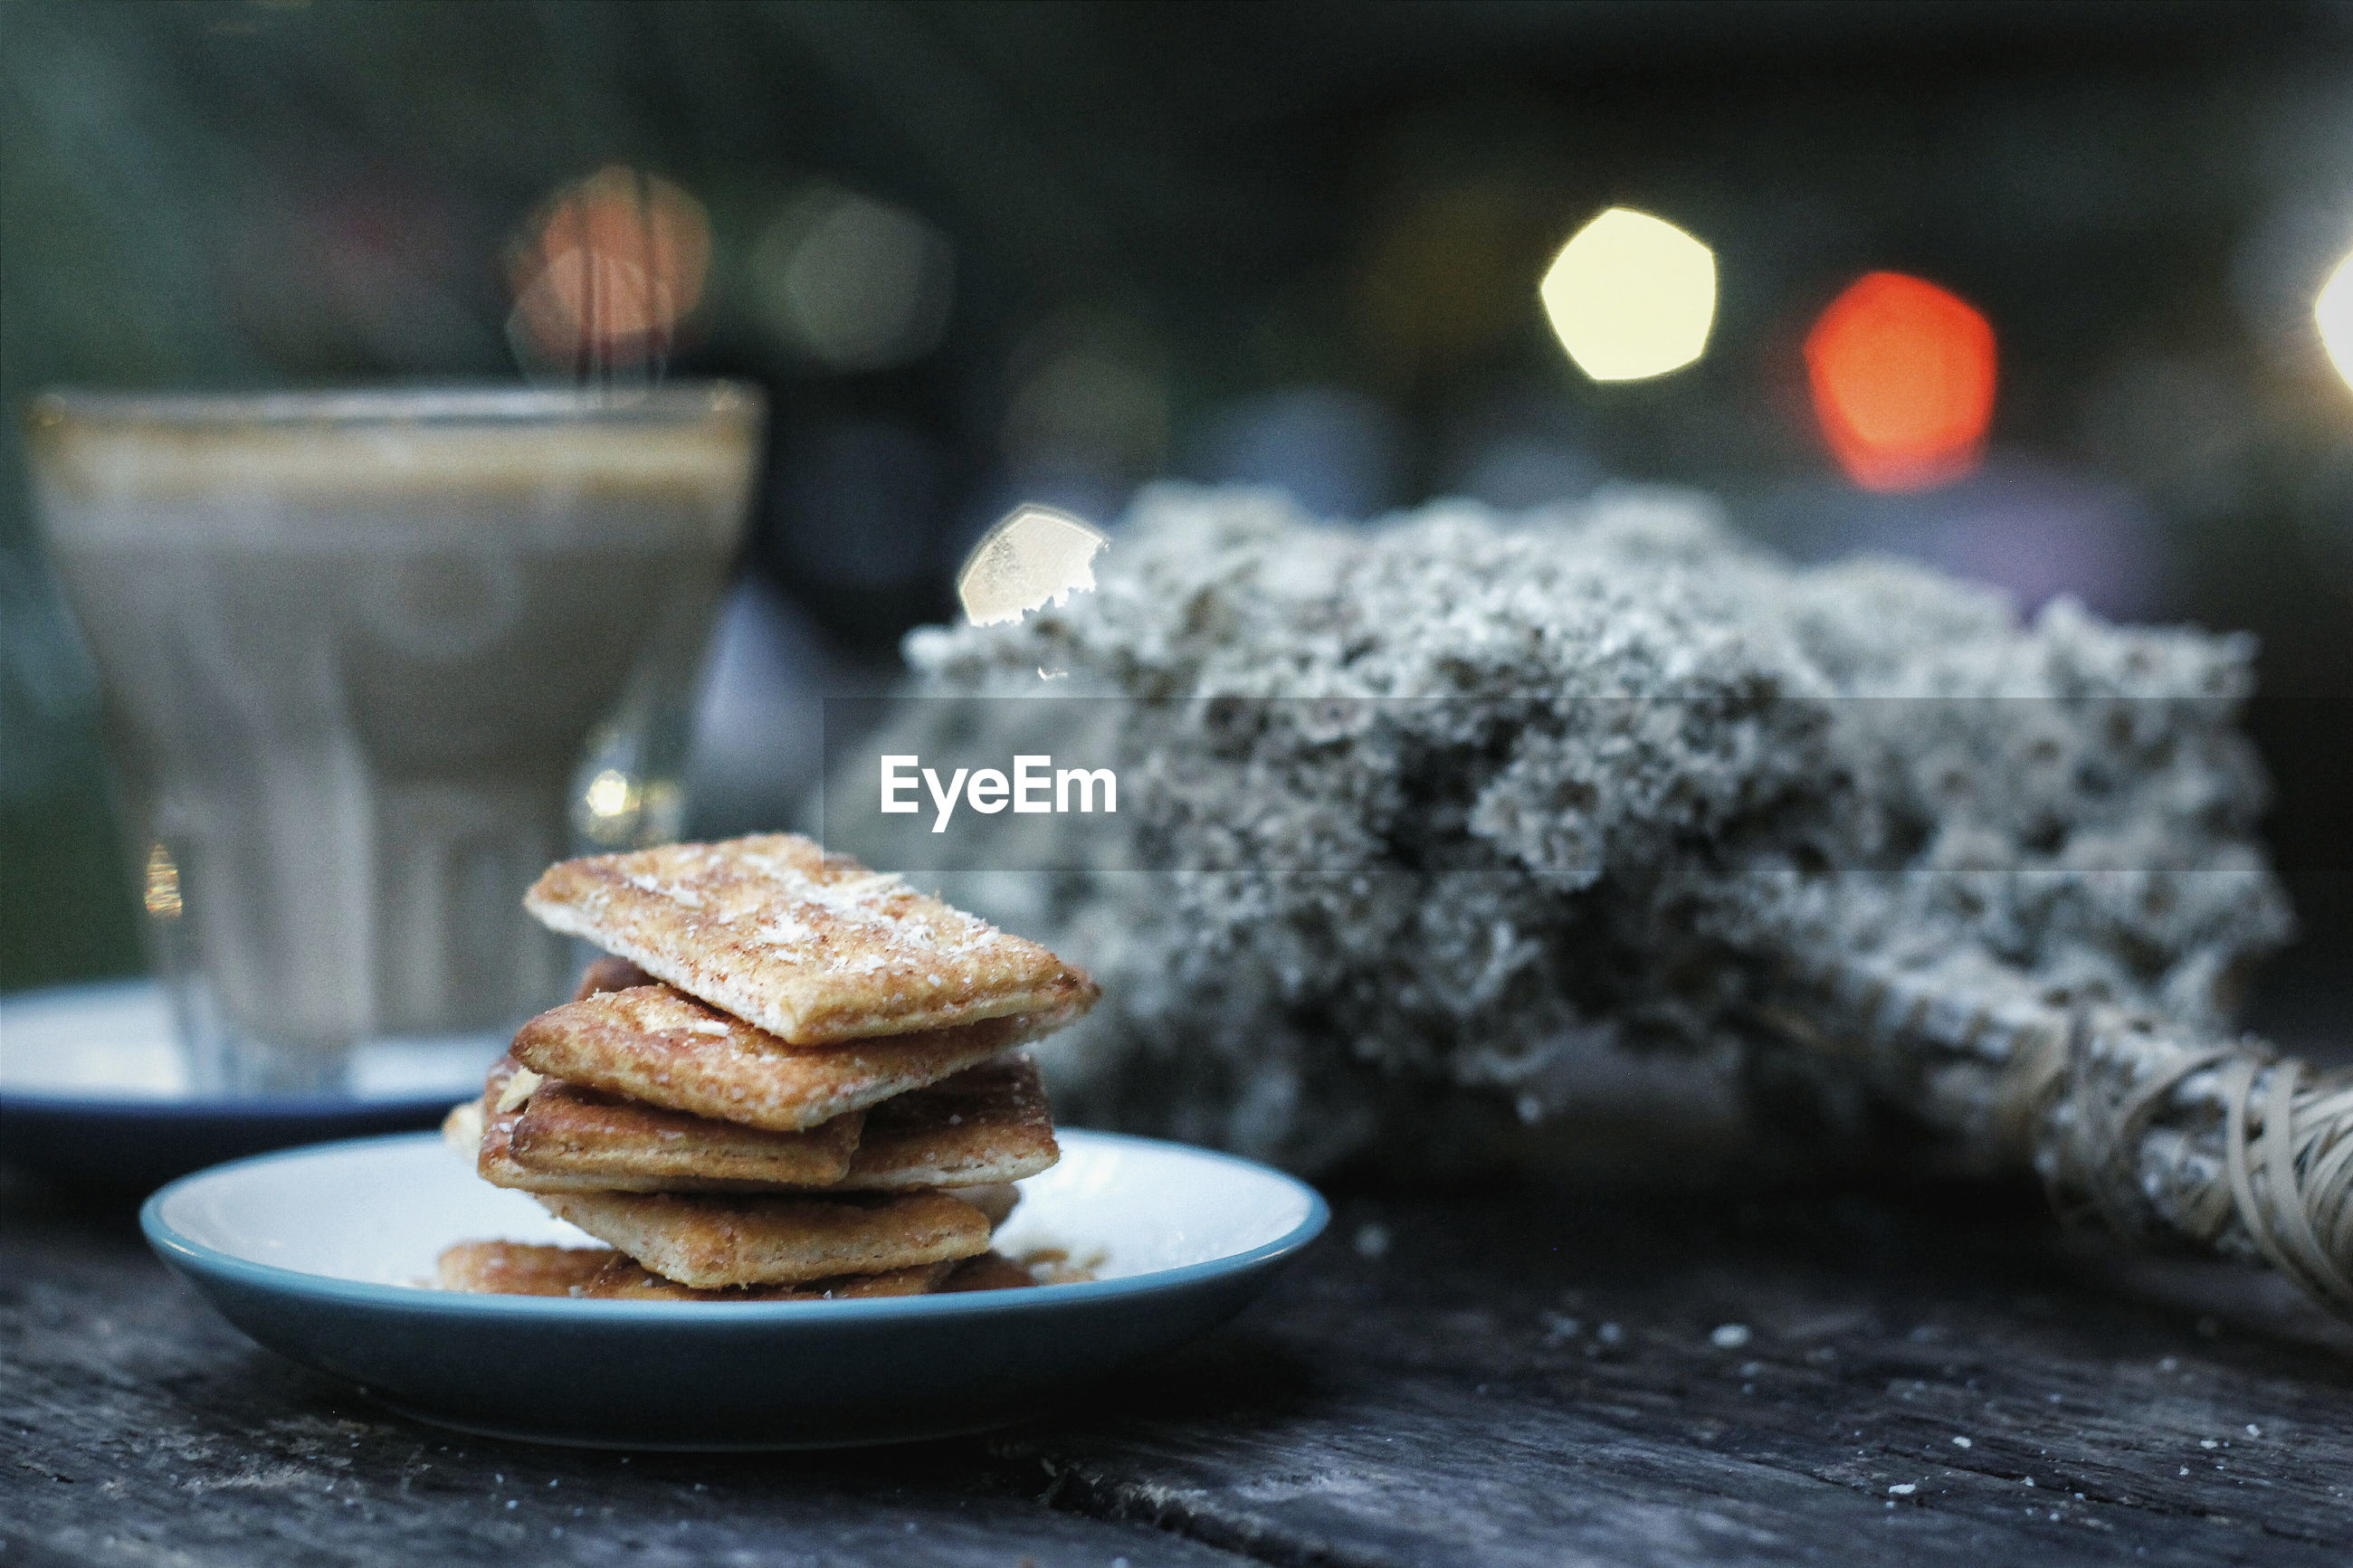 Stacked biscuits in plate by coffee on table